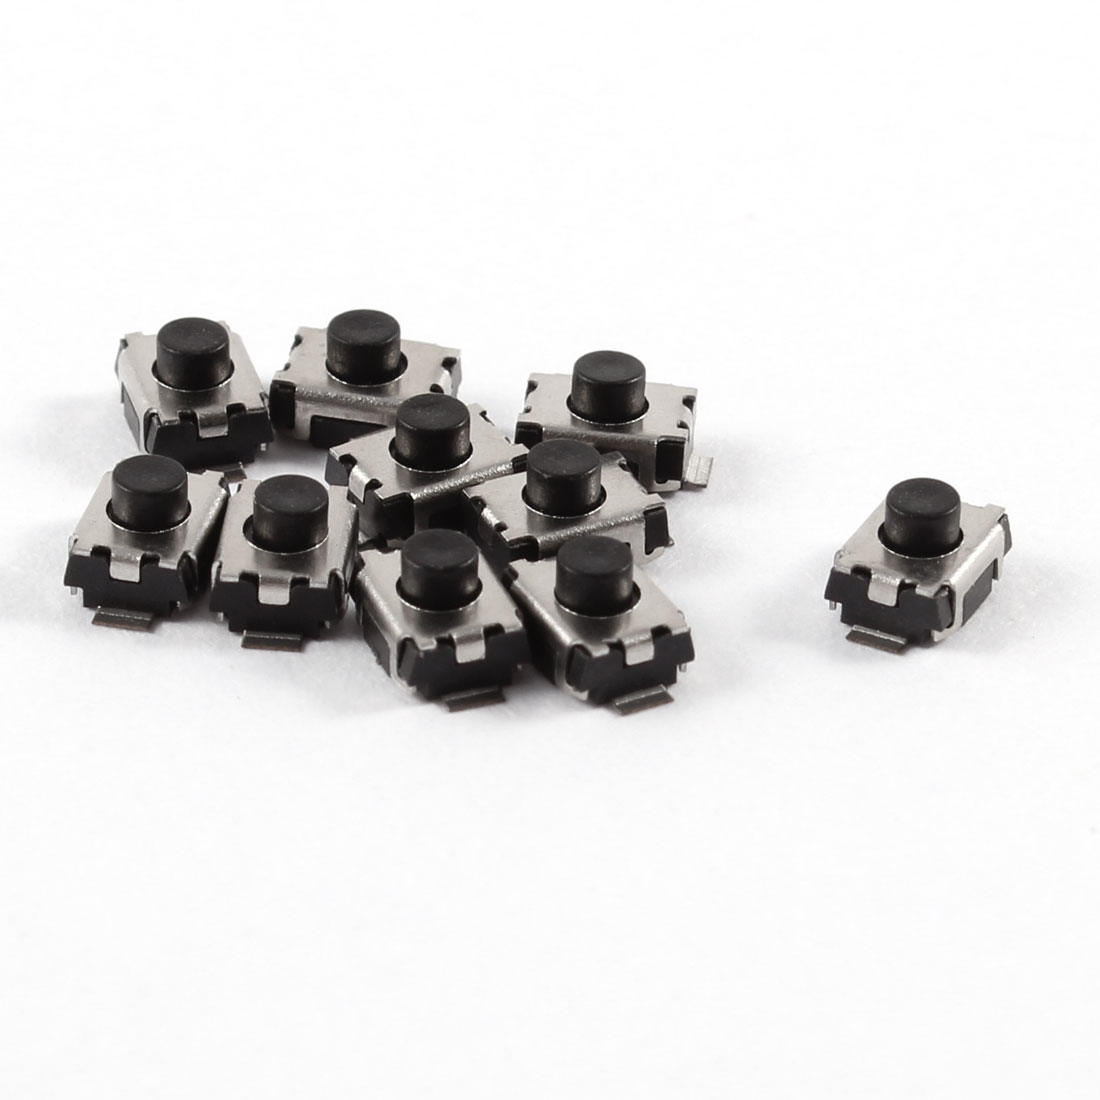 10 Pcs 3x4x2.5mm Momentary Push Button SMD SMT Tactile Tact Switch